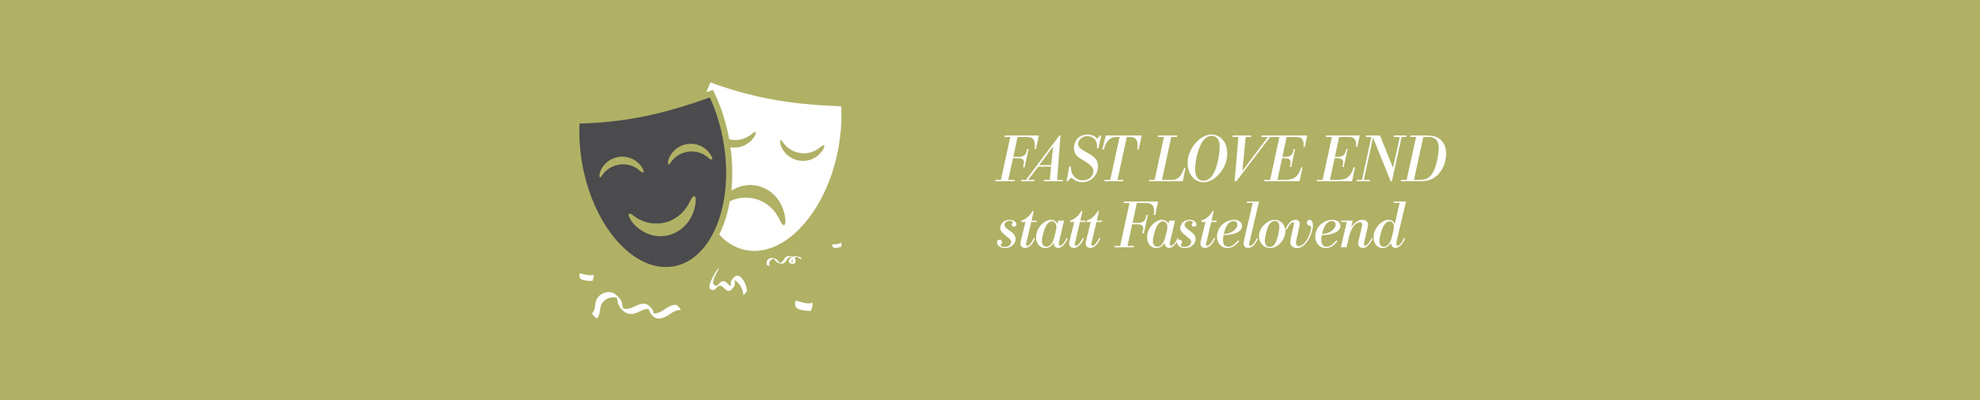 FAST LOVE END statt Fastelovend